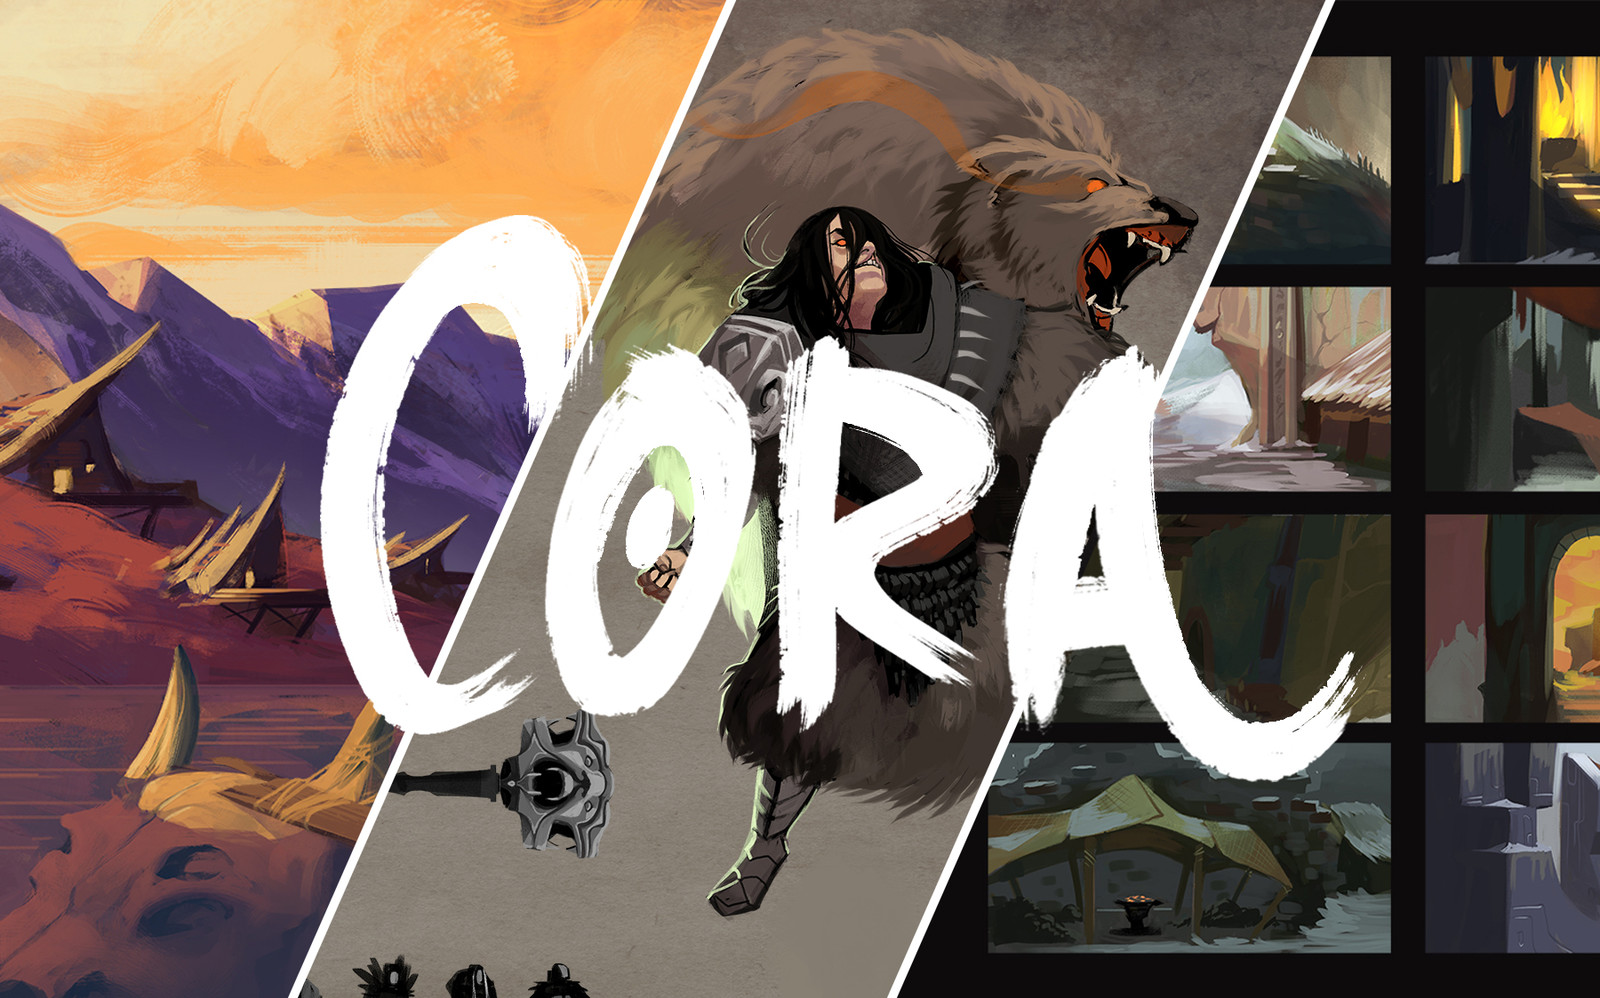 Cora Visual Development